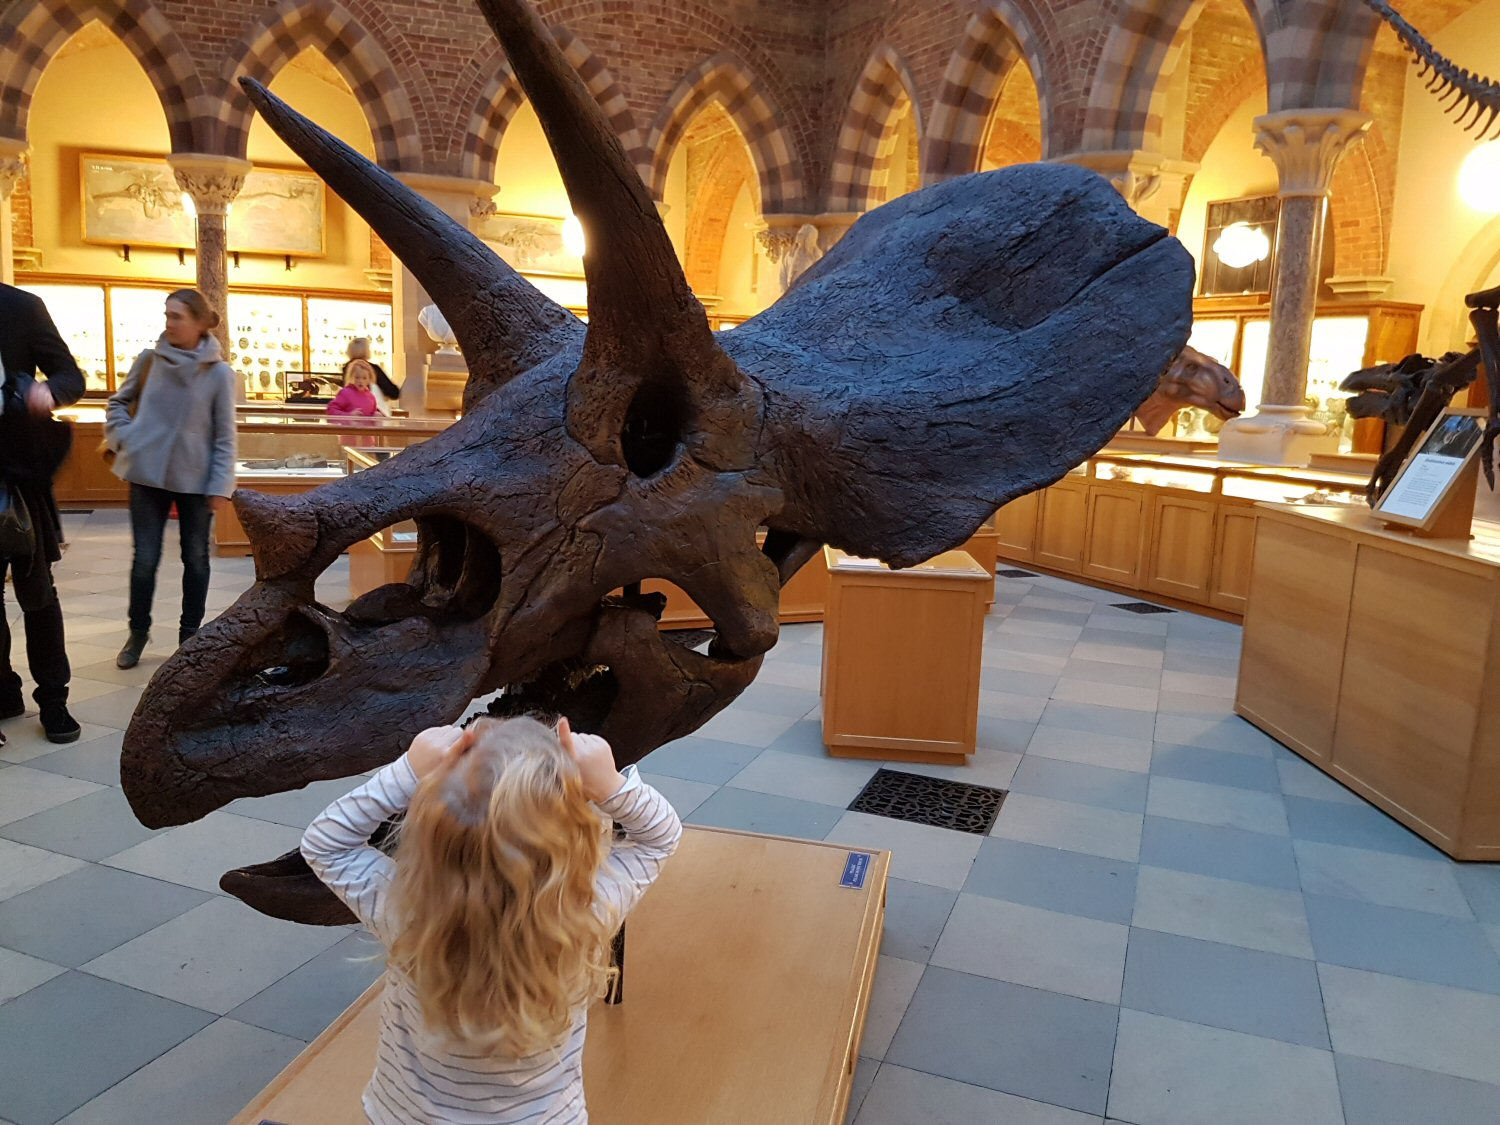 Triceratops head and small girl - one of the exhibits at Oxford University Museum of Natural History. Our Oxford University natural history museum day out